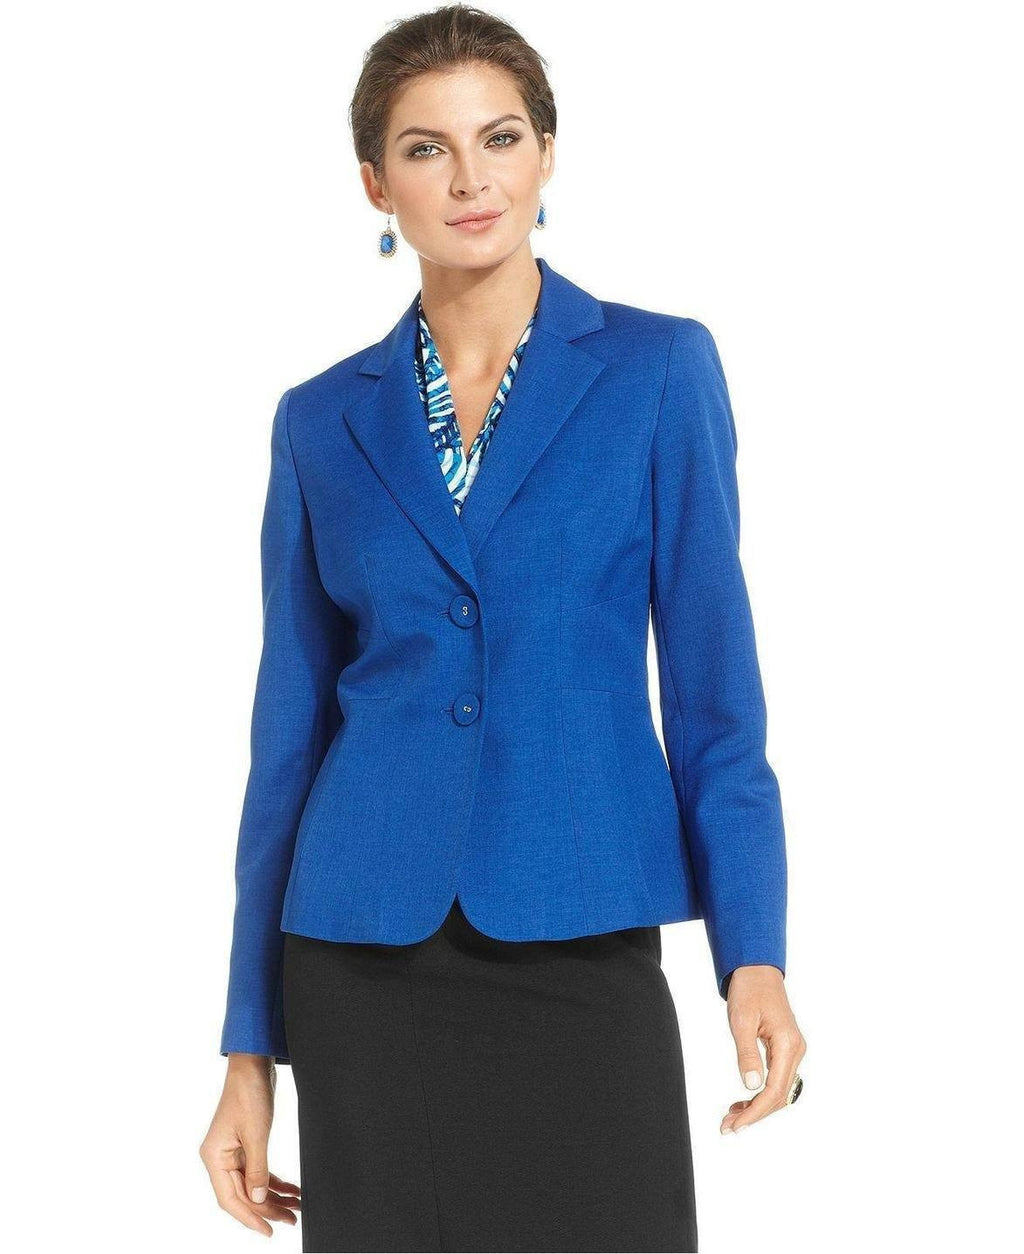 Le Suit Petite Two-Button Crosshatch Blazer - Fashionbarn shop